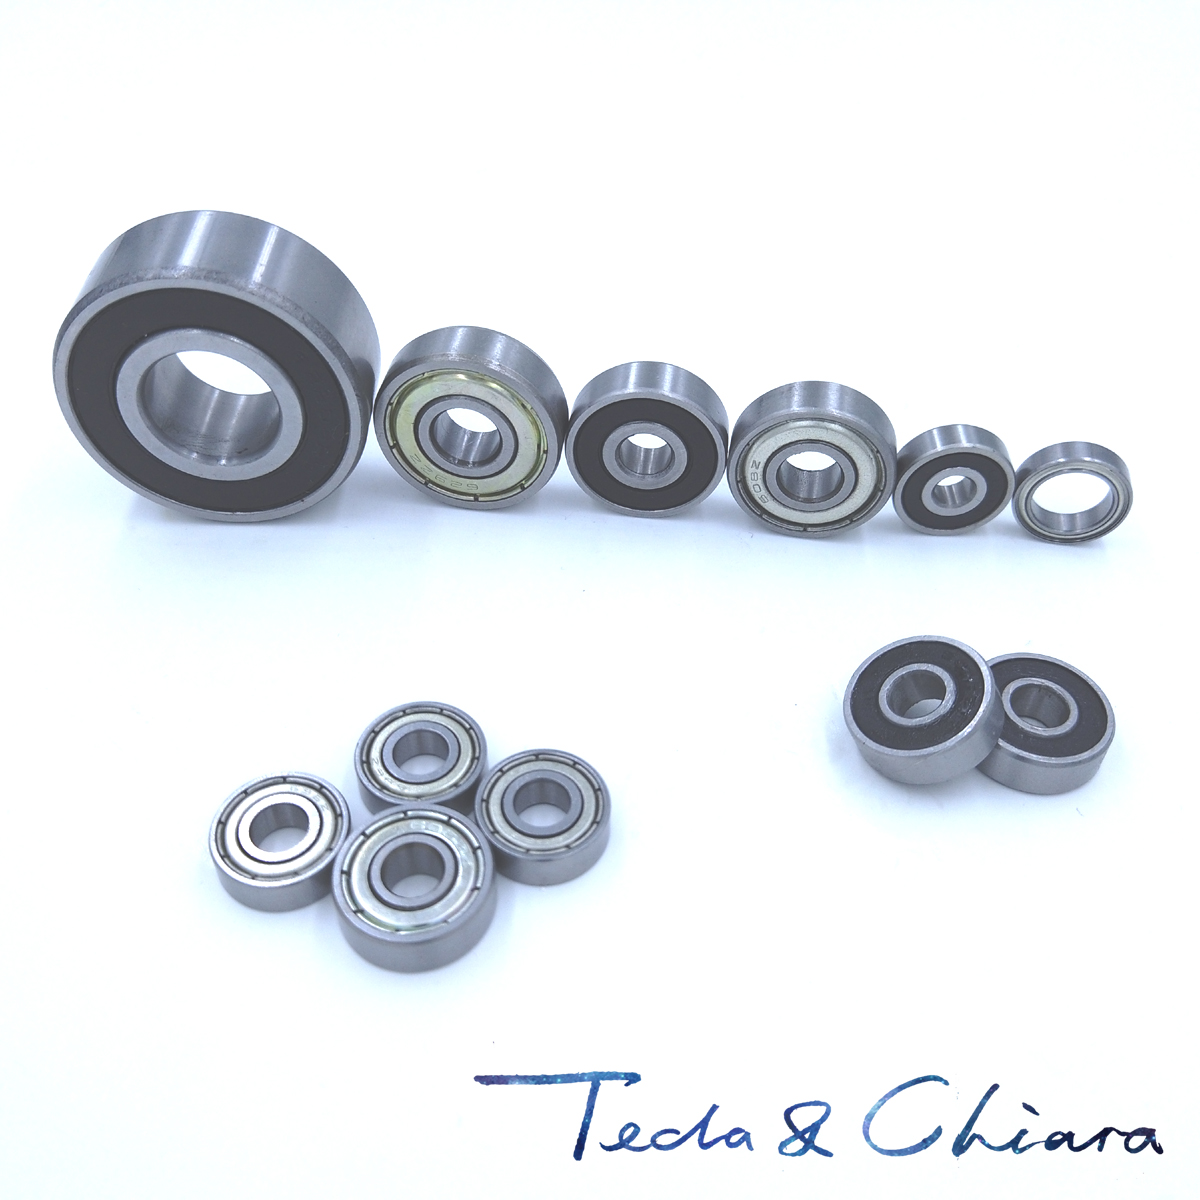 6700 6700ZZ <font><b>6700RS</b></font> 6700-2Z 6700Z 6700-2RS ZZ RS RZ 2RZ Deep Groove Ball Bearings 10 x 15 x 4mm image